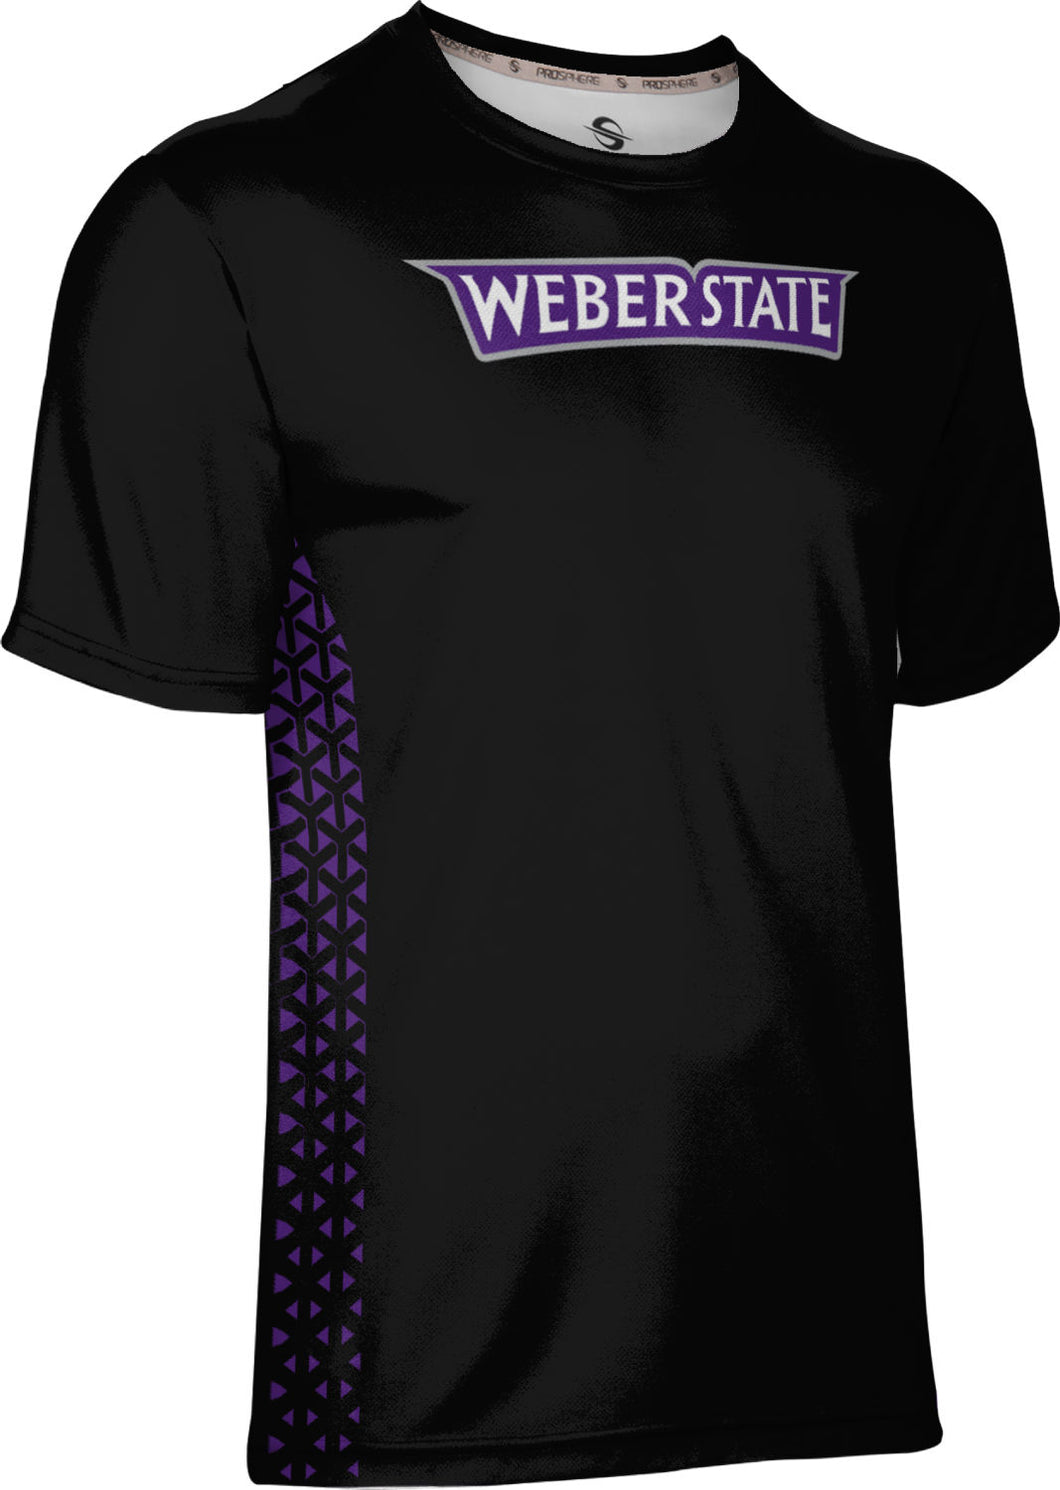 Weber State University: Men's T-shirt - Geometric